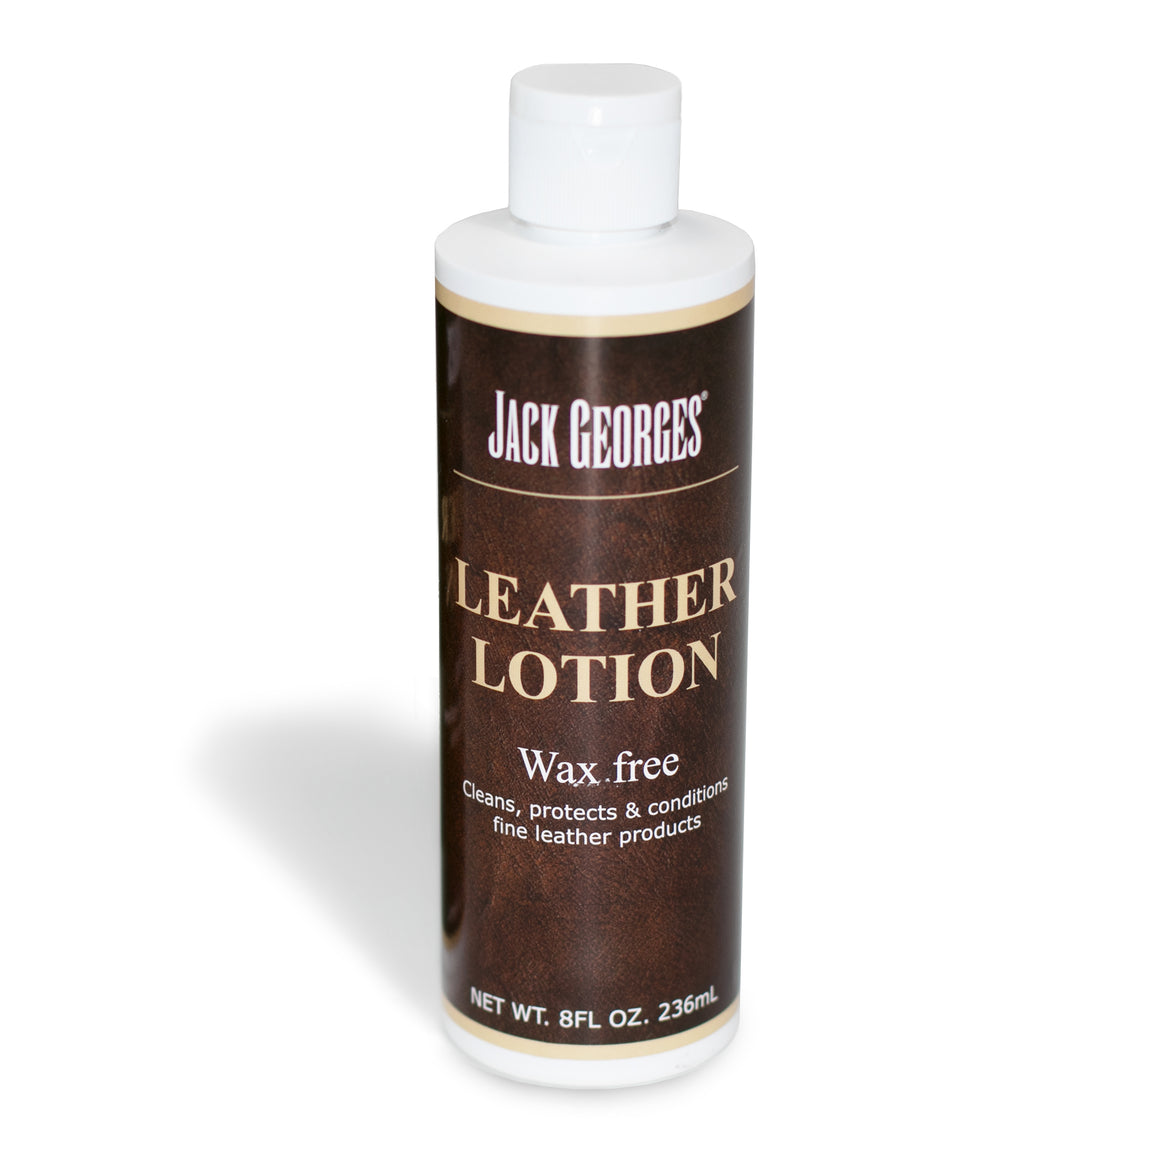 Jack Georges Leather Lotion (One Bottle)